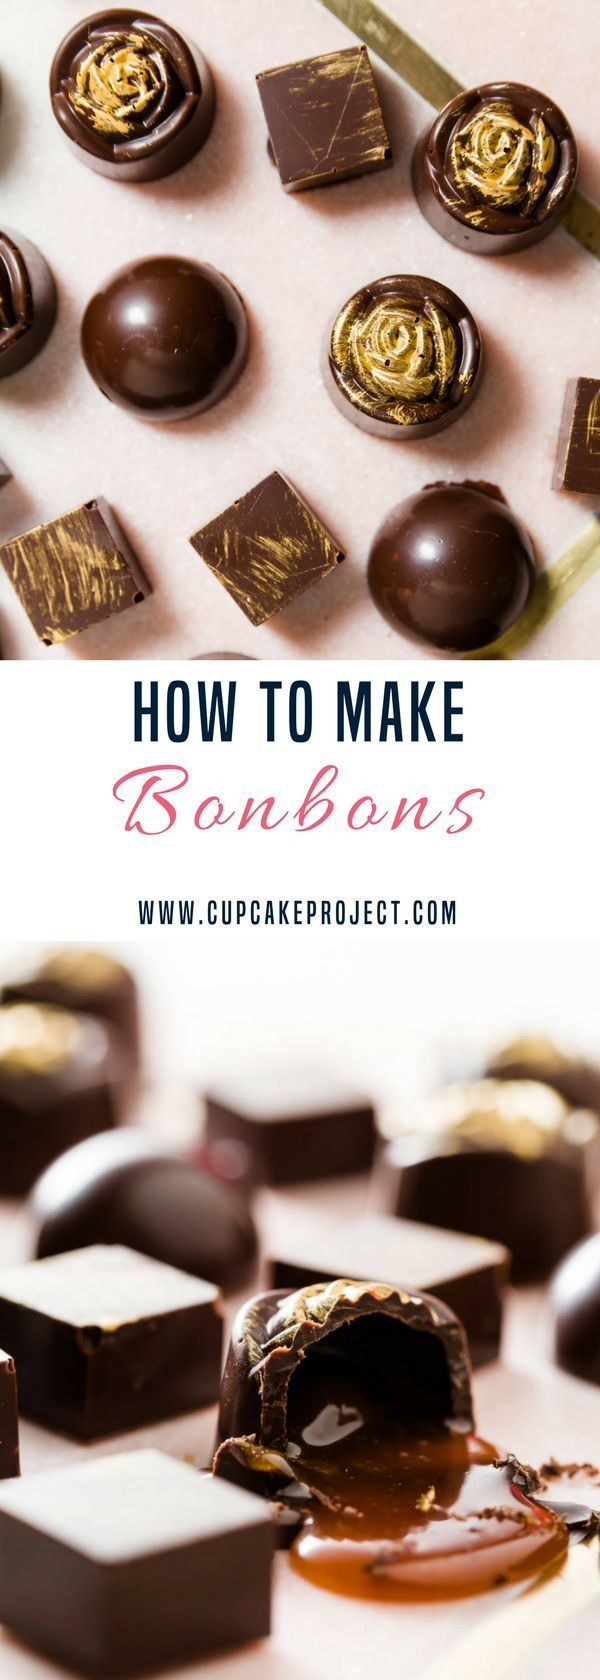 Easy Valentine's ideas using chocolates? This bonbons are confections with a thin chocolate shell and oozy filling that spills out when you take a bite. Perfect as a Valentines gift! More easy and from scratch baking recipes from #CupcakeProject #dessert